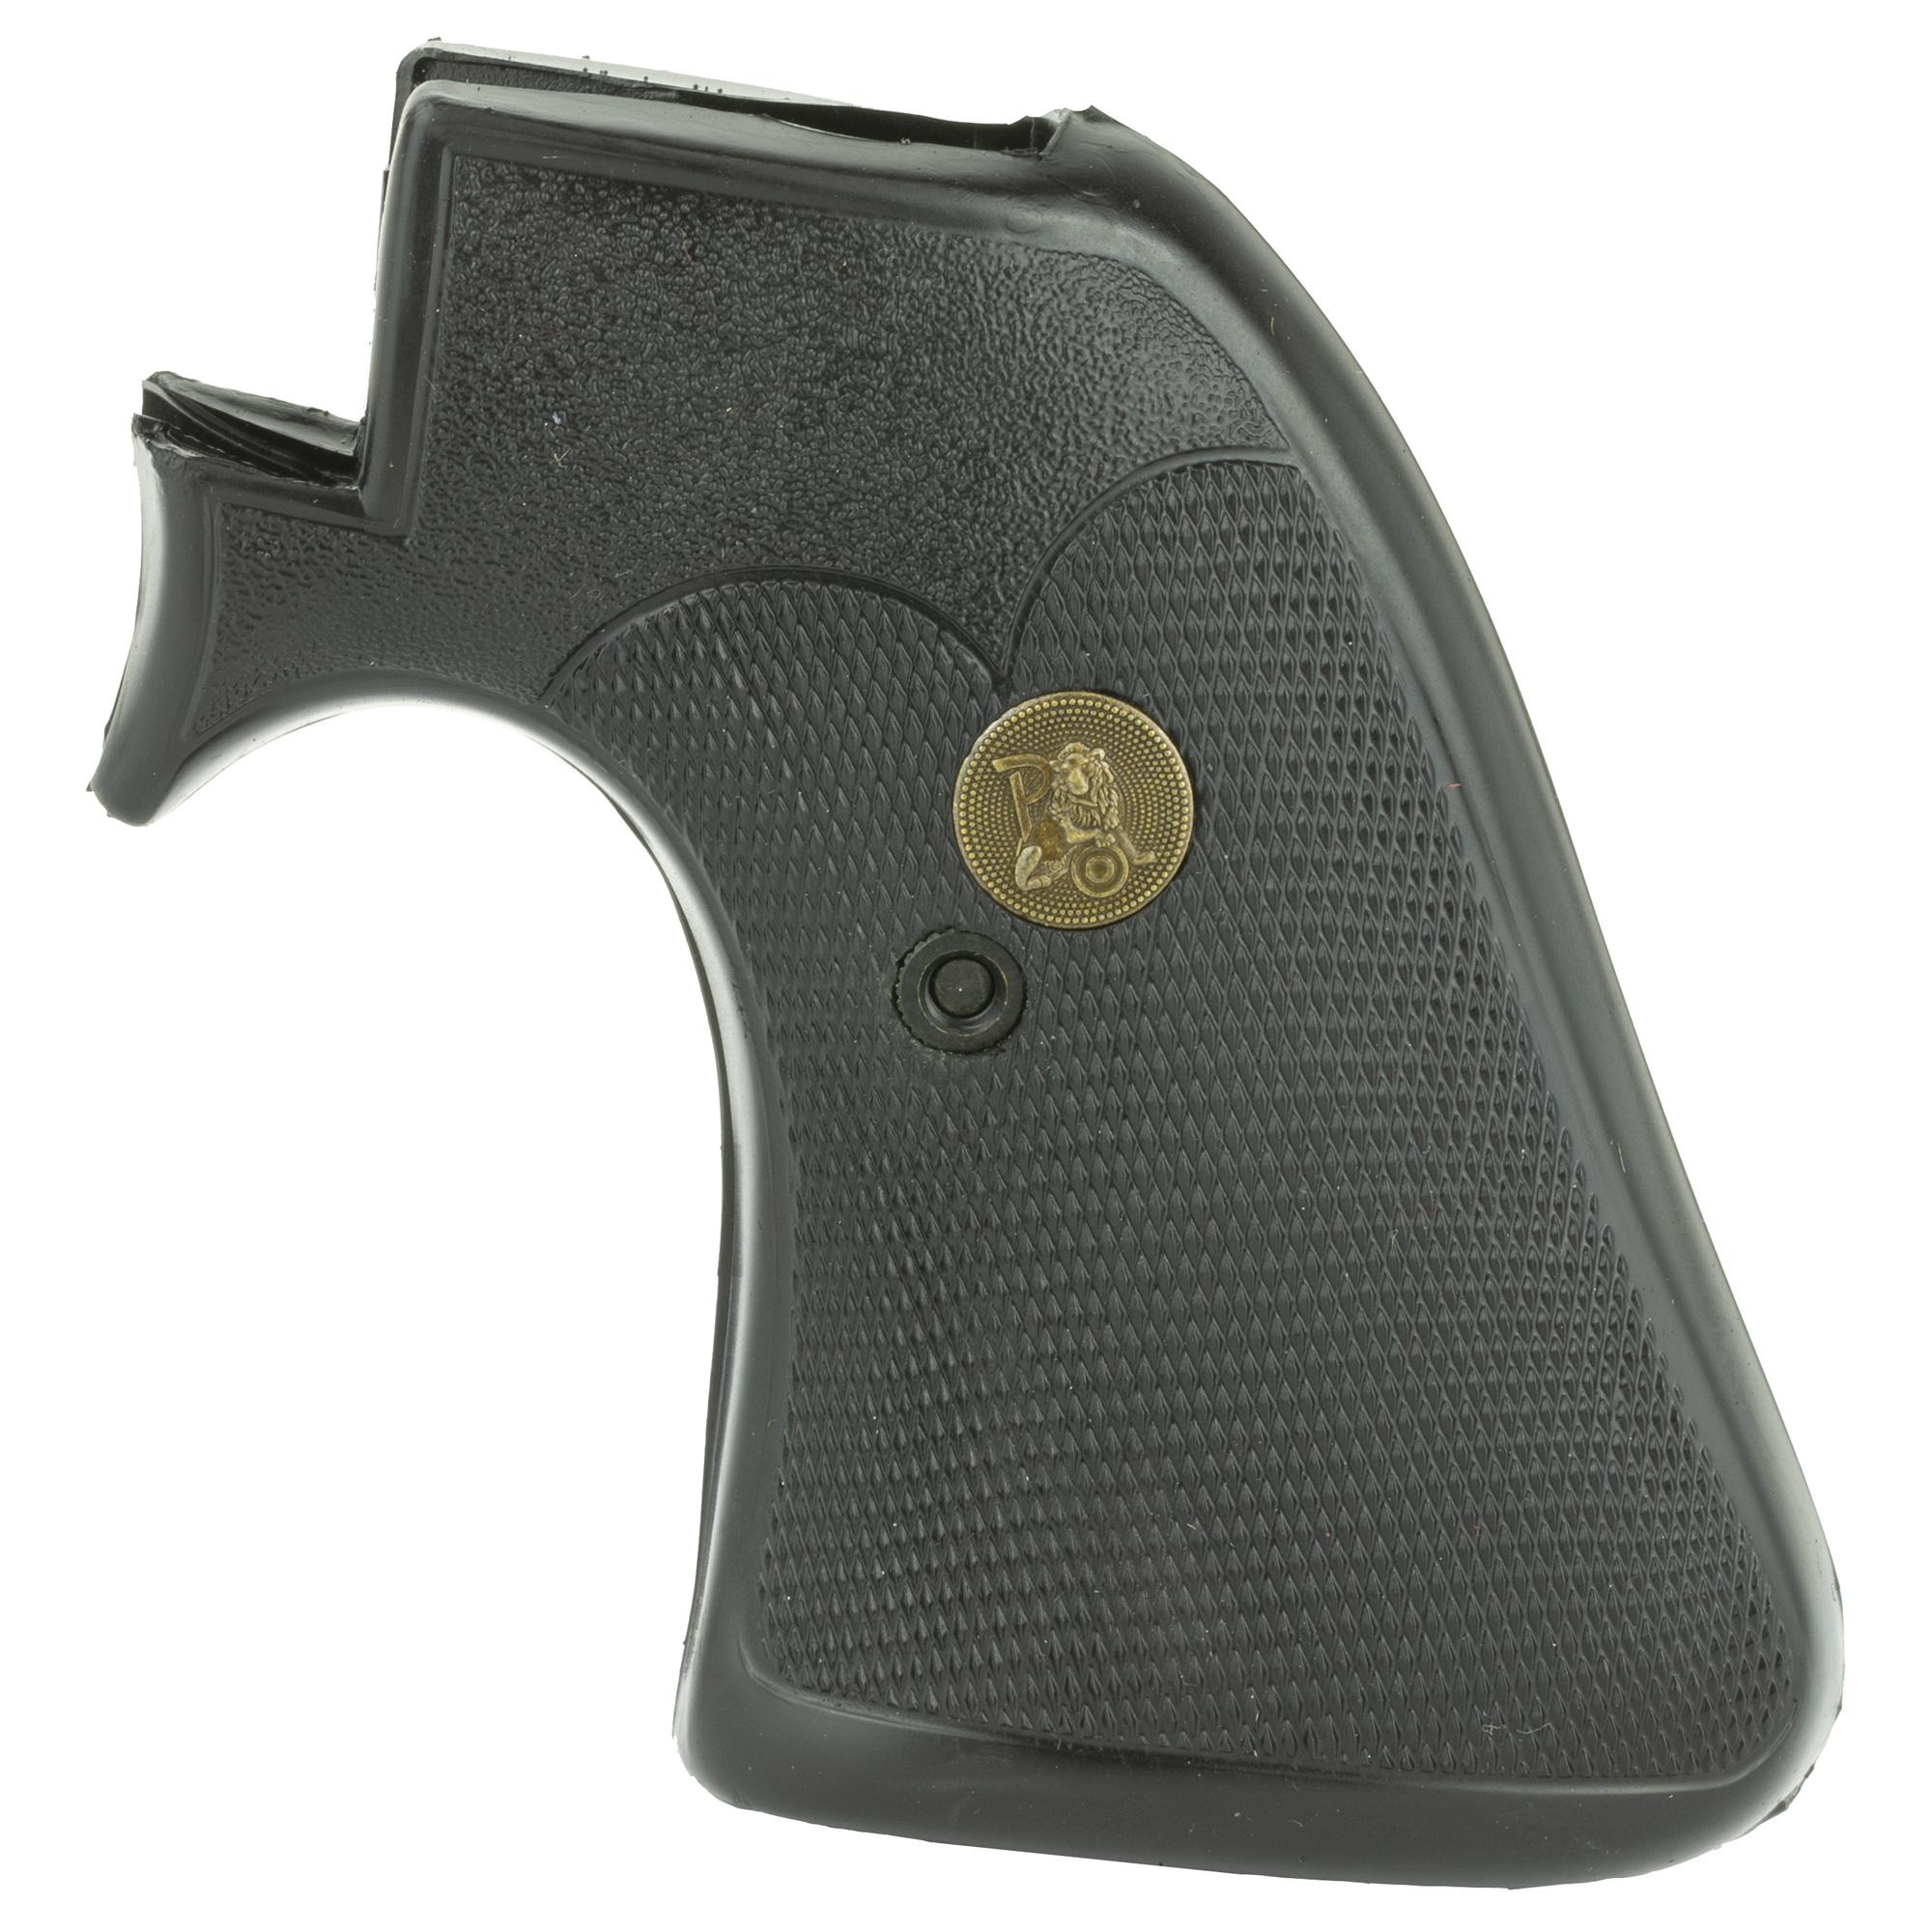 """The first grip design developed by Frank Pachmayr. This popular revolver grip has been the mainstay of their line since the beginning and it remains popular. Pachmayr Presentation Grips feature their patented design"""" classic styling"""" and a magnificent finish with deep checkering for control and a superb shiny finish. Just look at your father's revolver and you will notice that the Presentation grips look great for years and are practically indestructible. Add a classic feel to your revolver with the Presentation Grips by Pachmayr."""